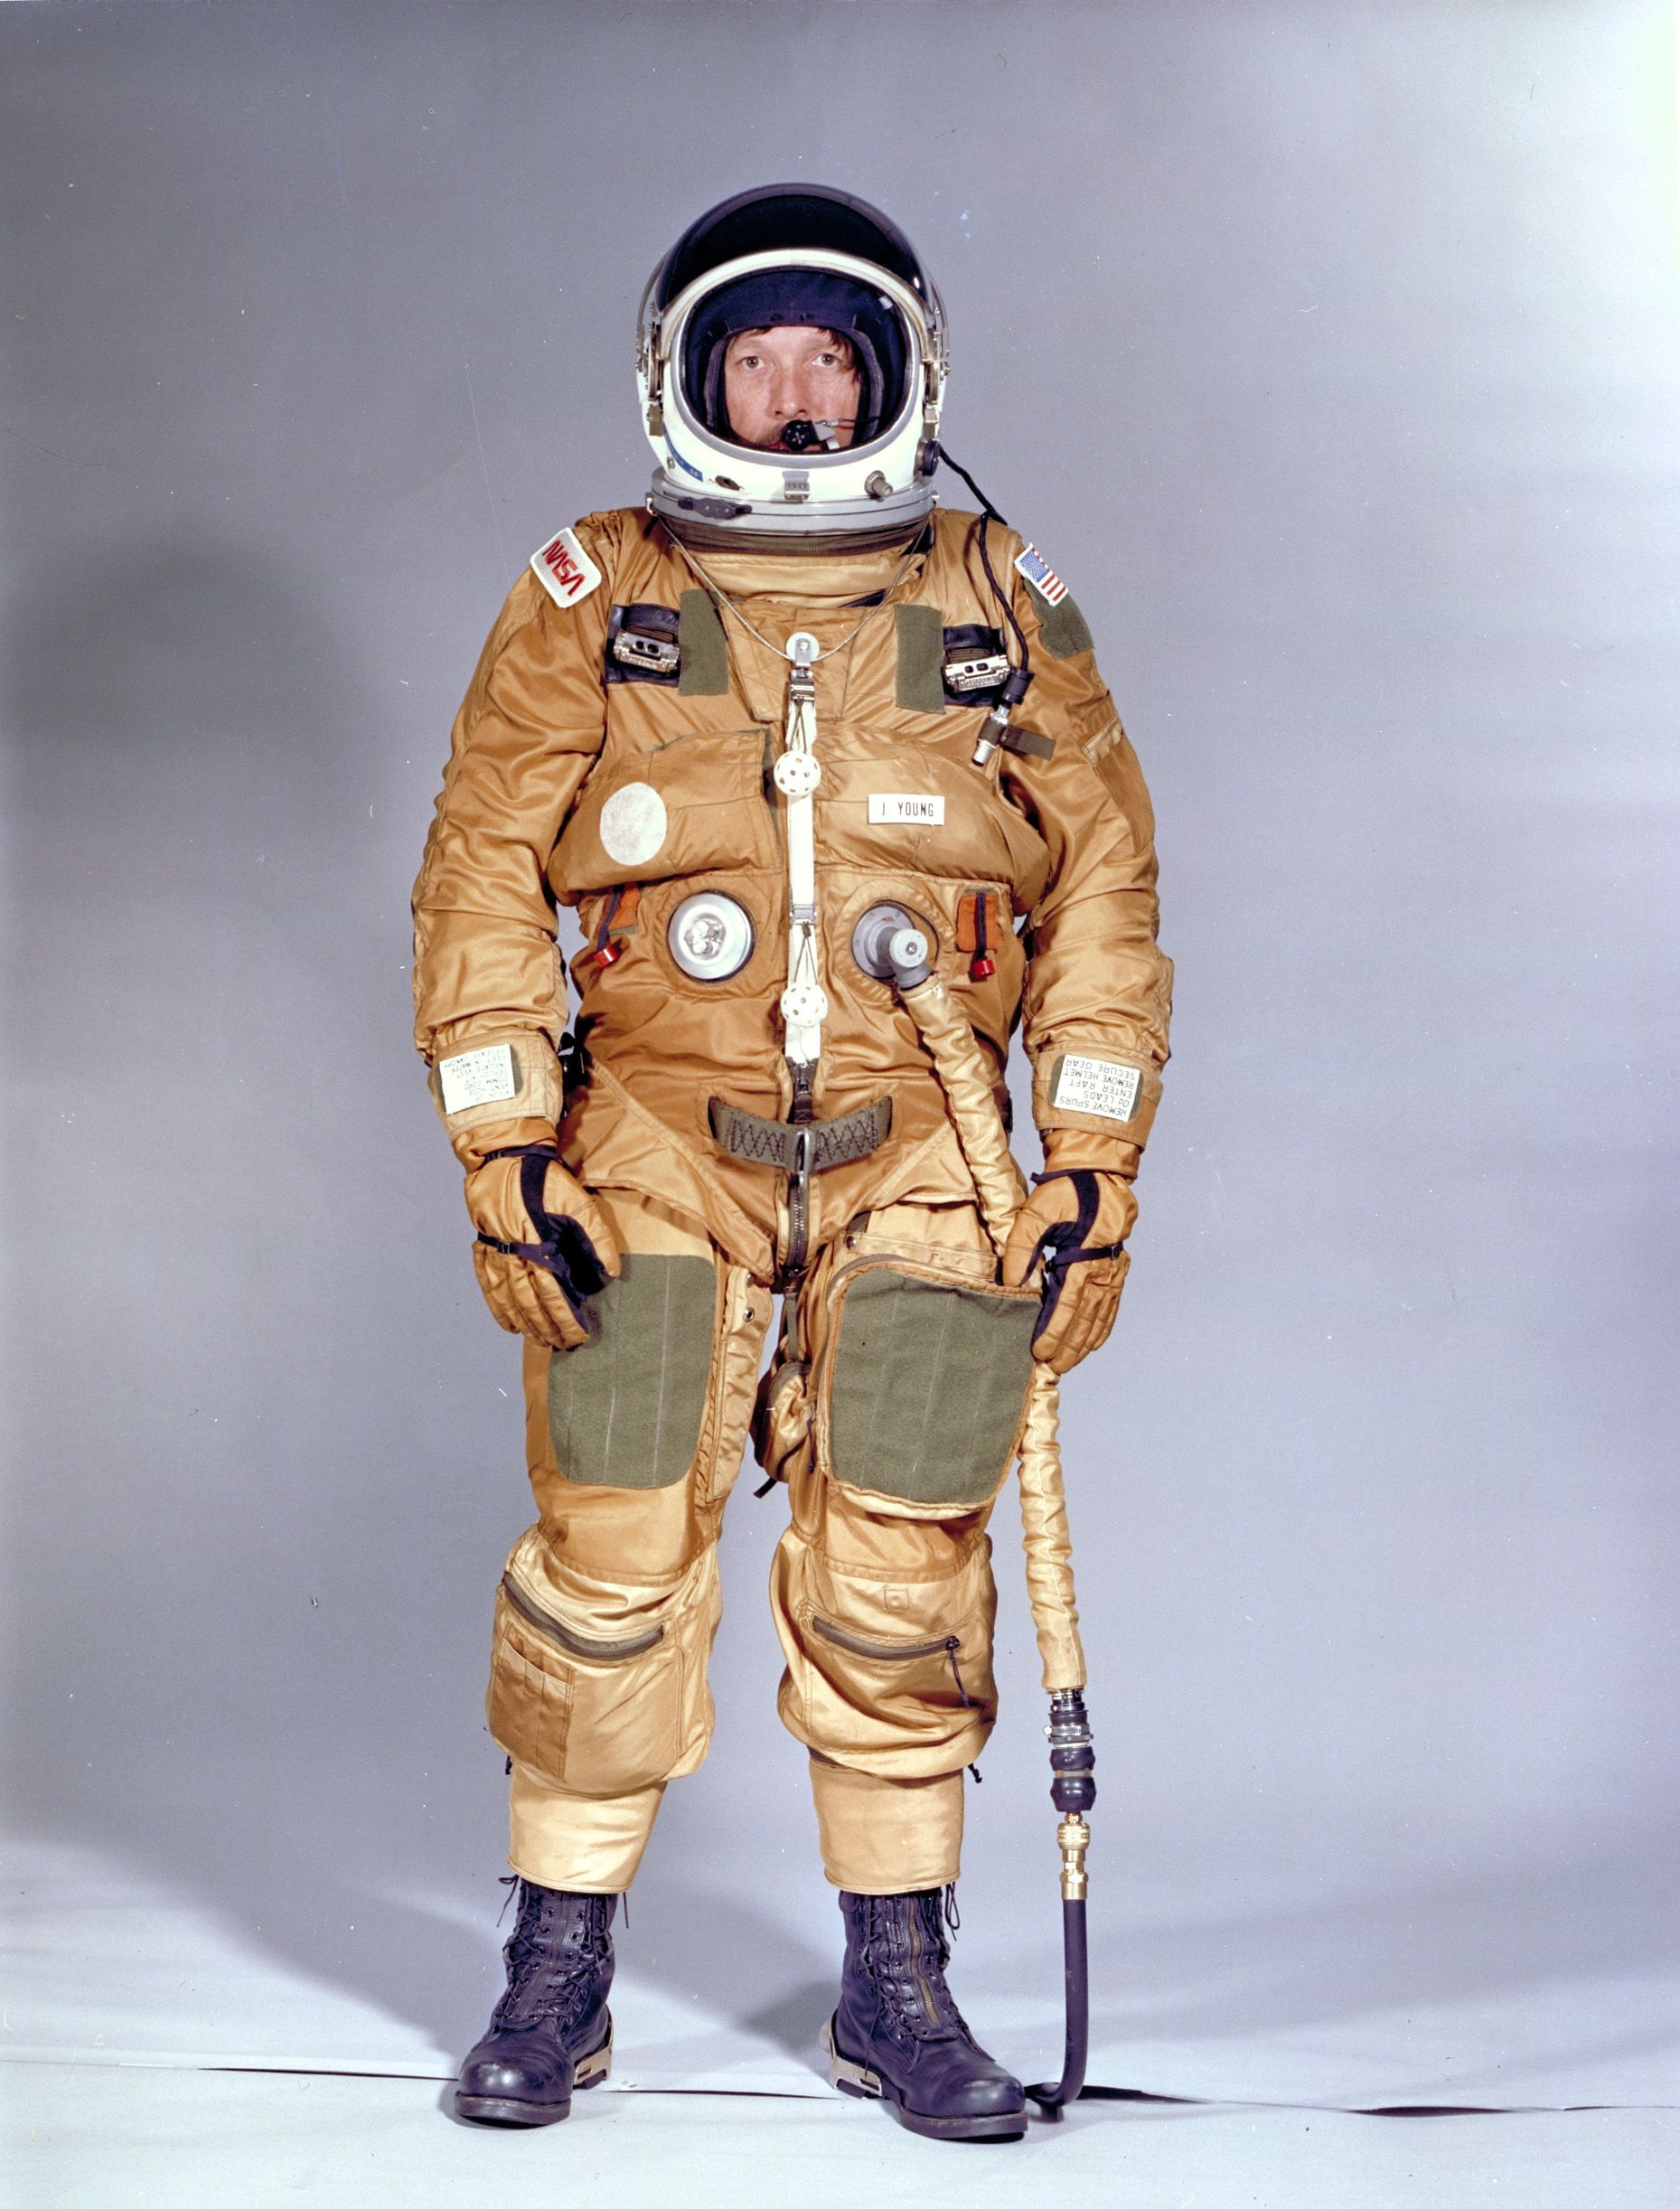 weight nasa astronaut costume - photo #4